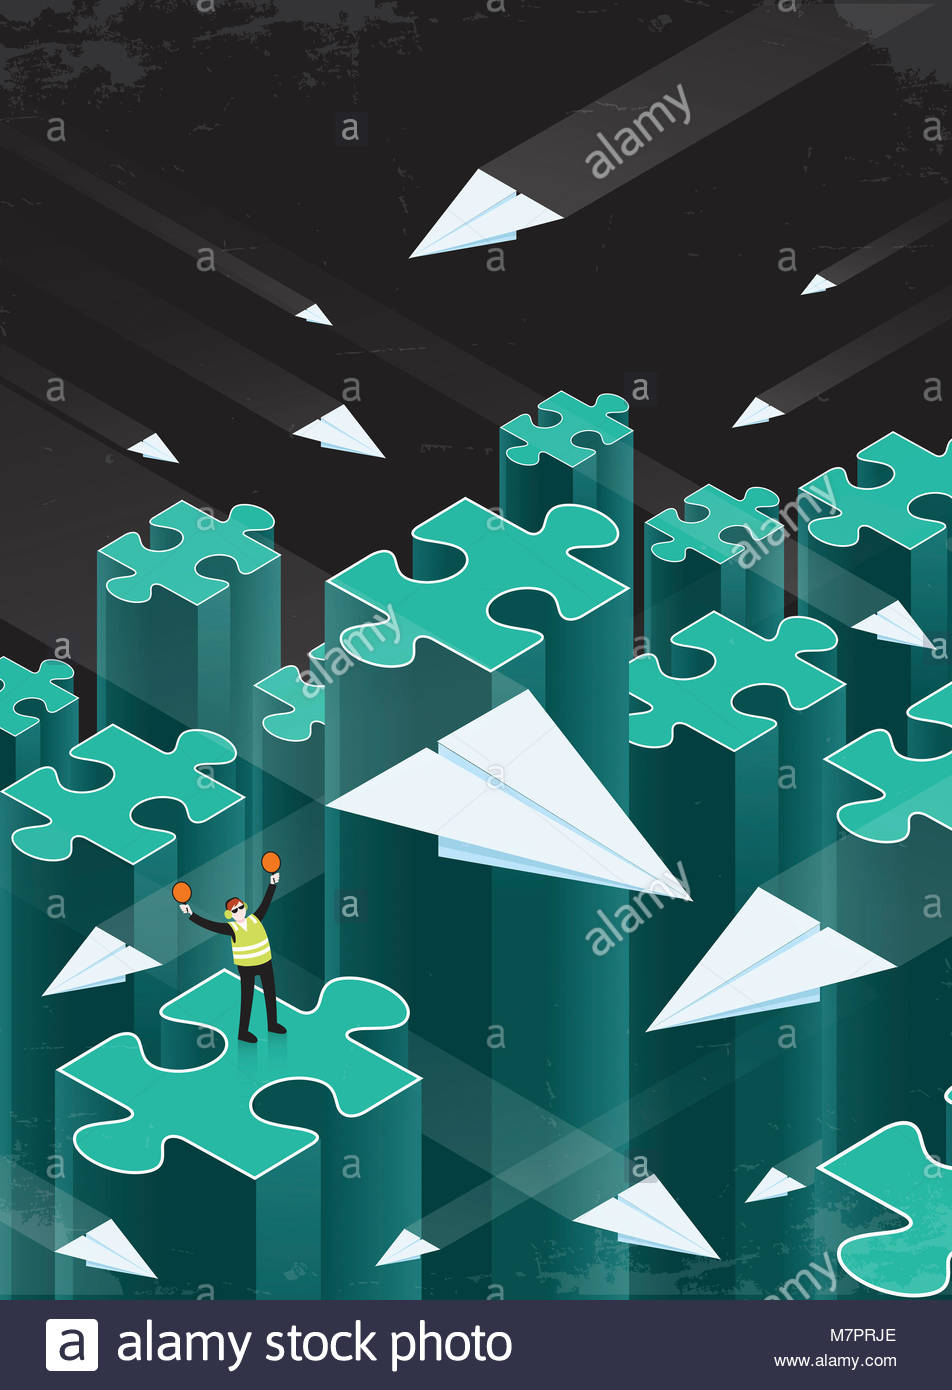 Air traffic controller directing paper airplanes between disconnected jigsaw puzzle piece columns - Stock Image